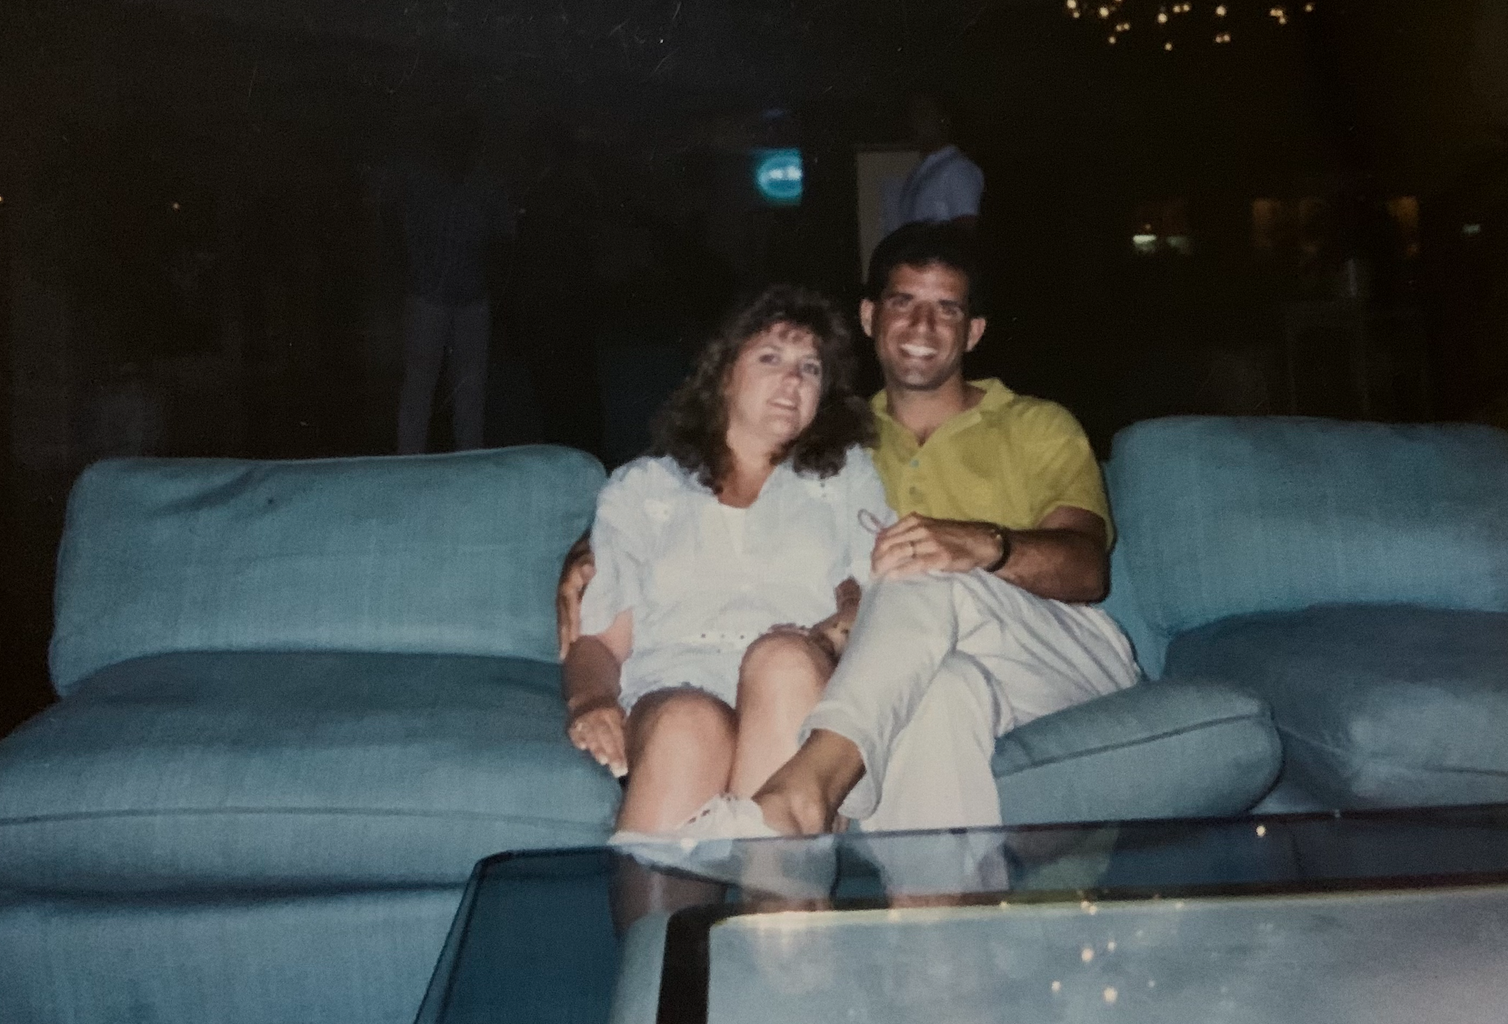 Photo of a couple posing together on a couch